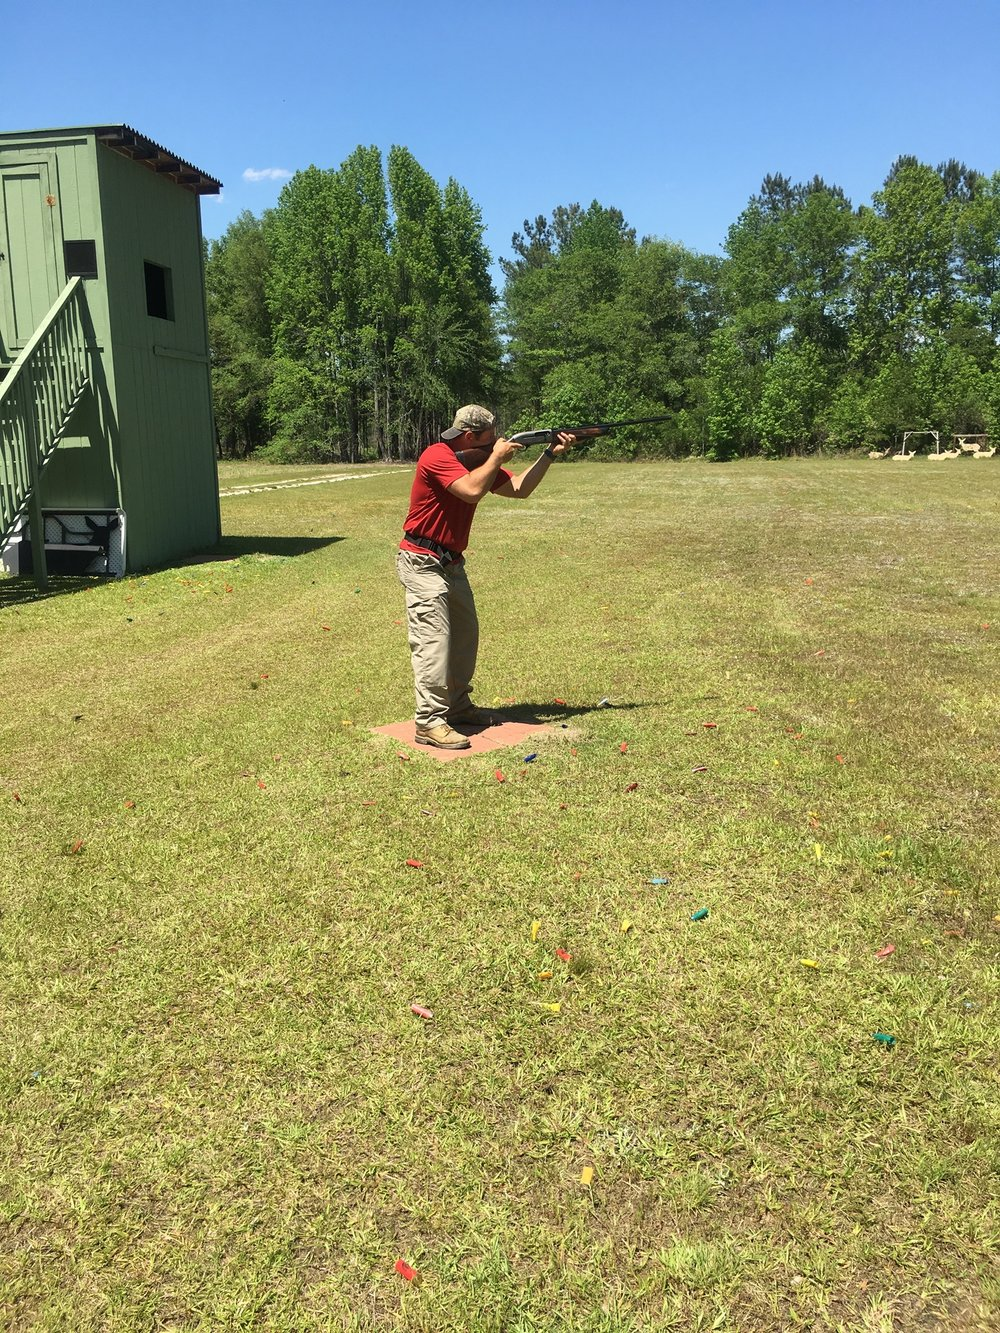 Warm up before your hunt with skeet shooting.